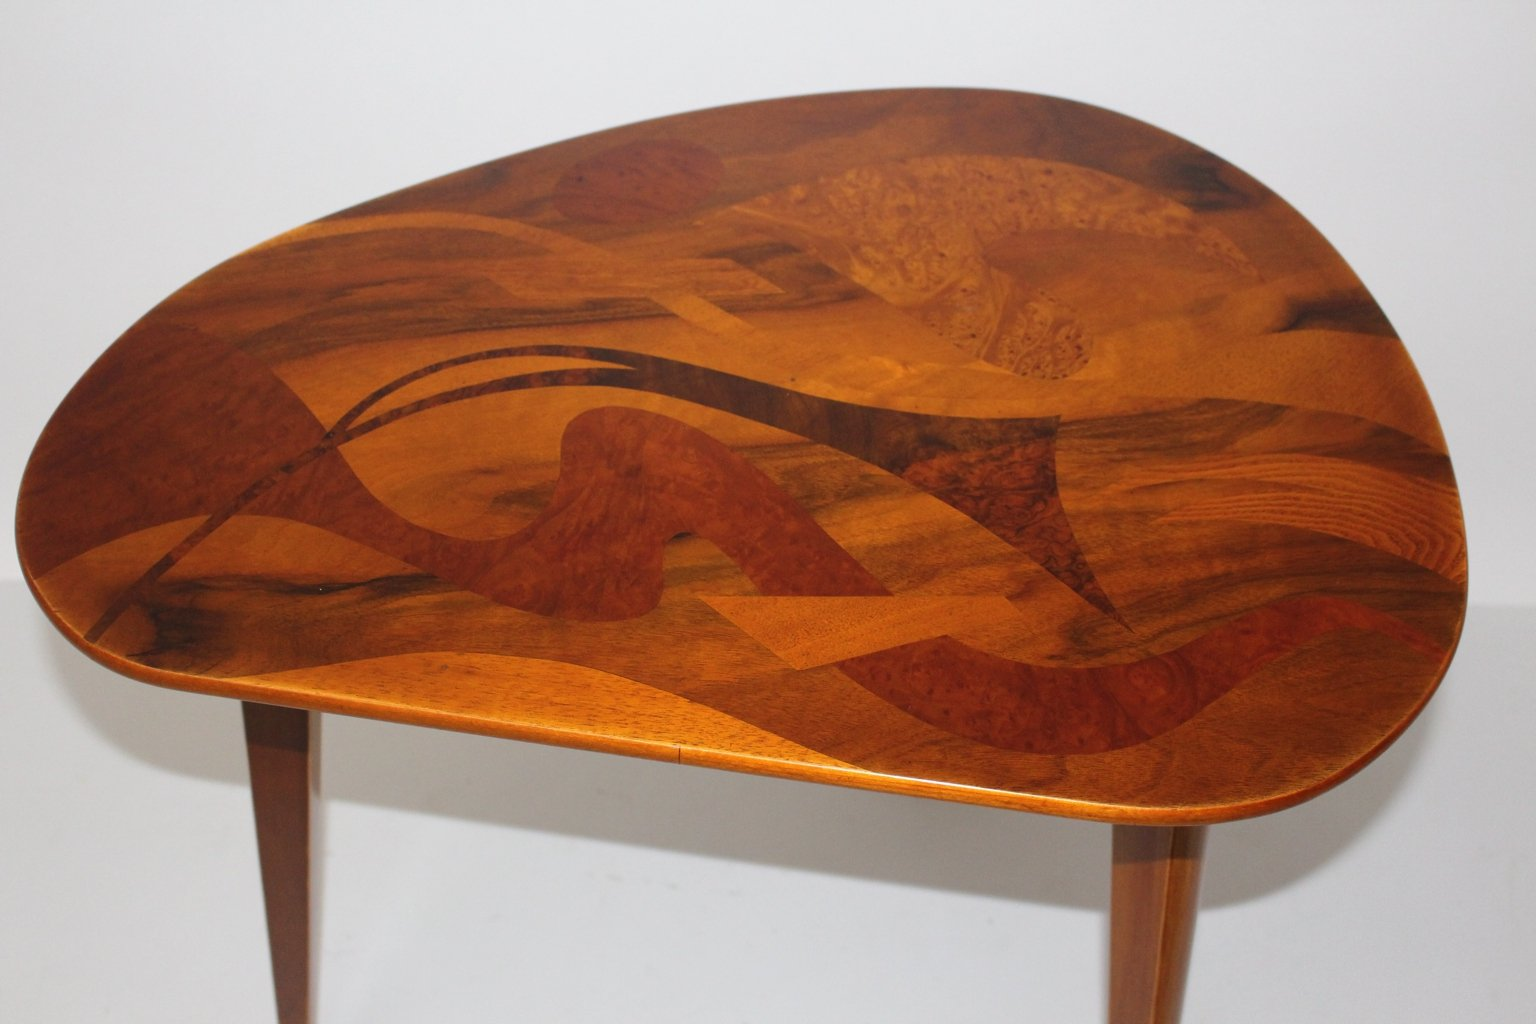 Vintage Austrian Inlaid Wooden Coffee Table, 1950s